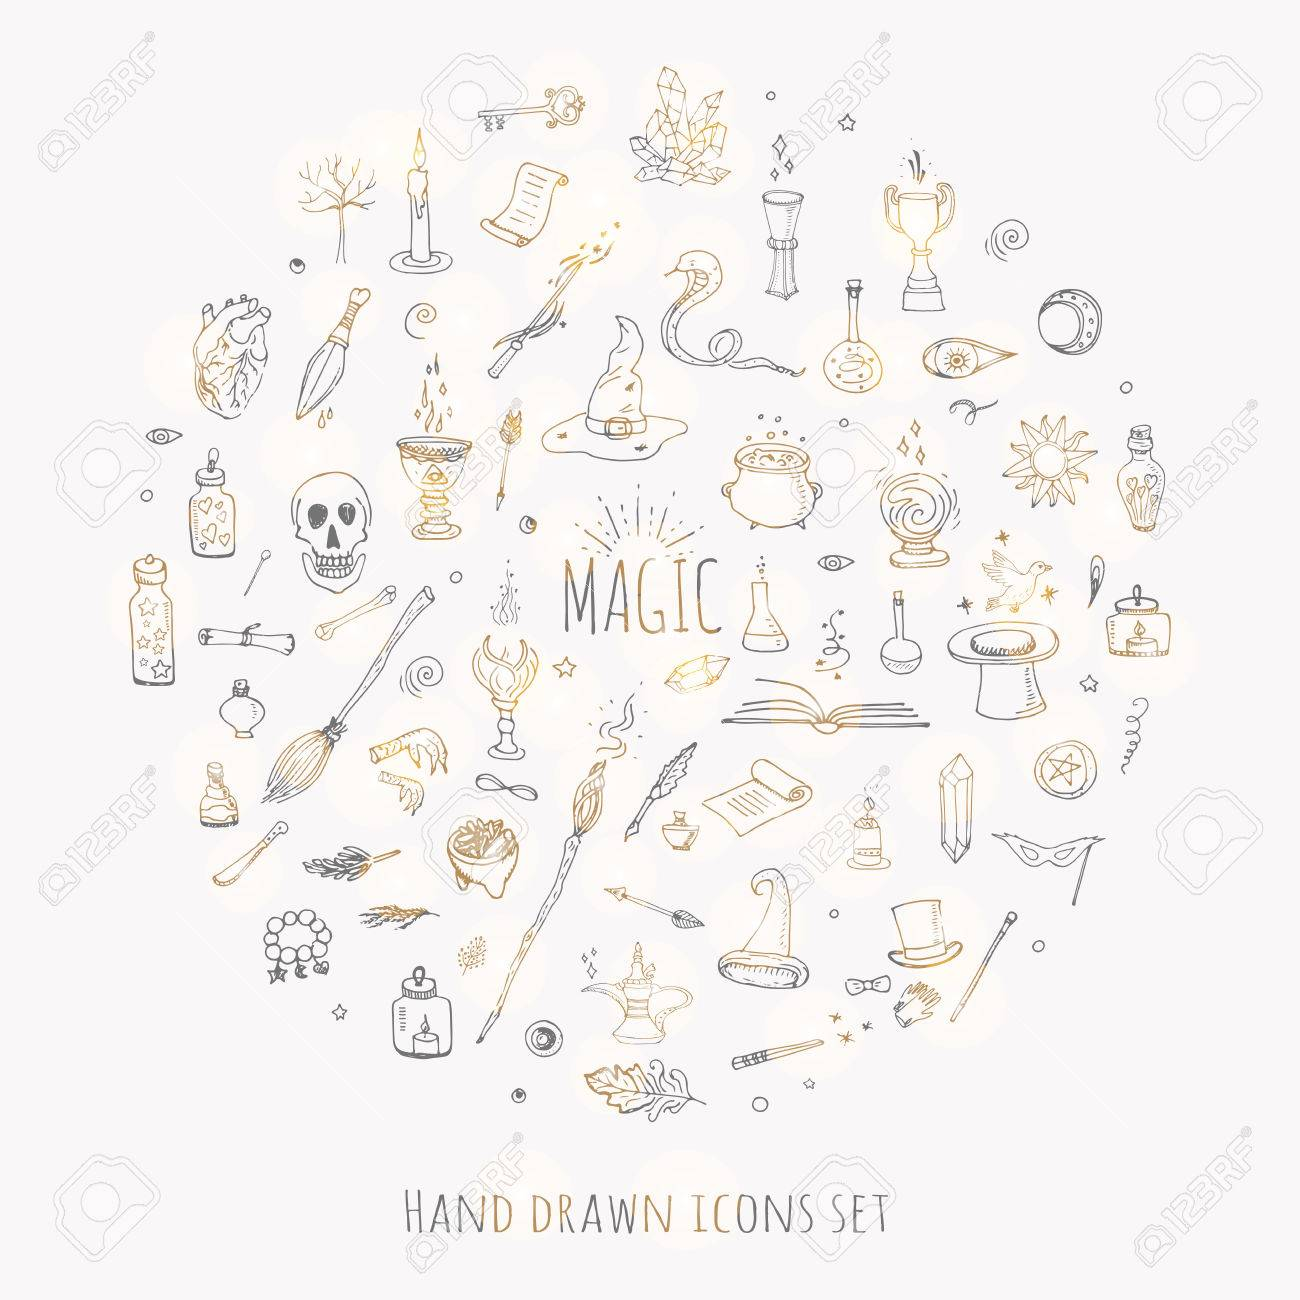 Hand drawn doodle magic set vector illustration wizardy hand drawn doodle magic set vector illustration wizardy witchcraft symbols isolated icons collections cartoon sorcery buycottarizona